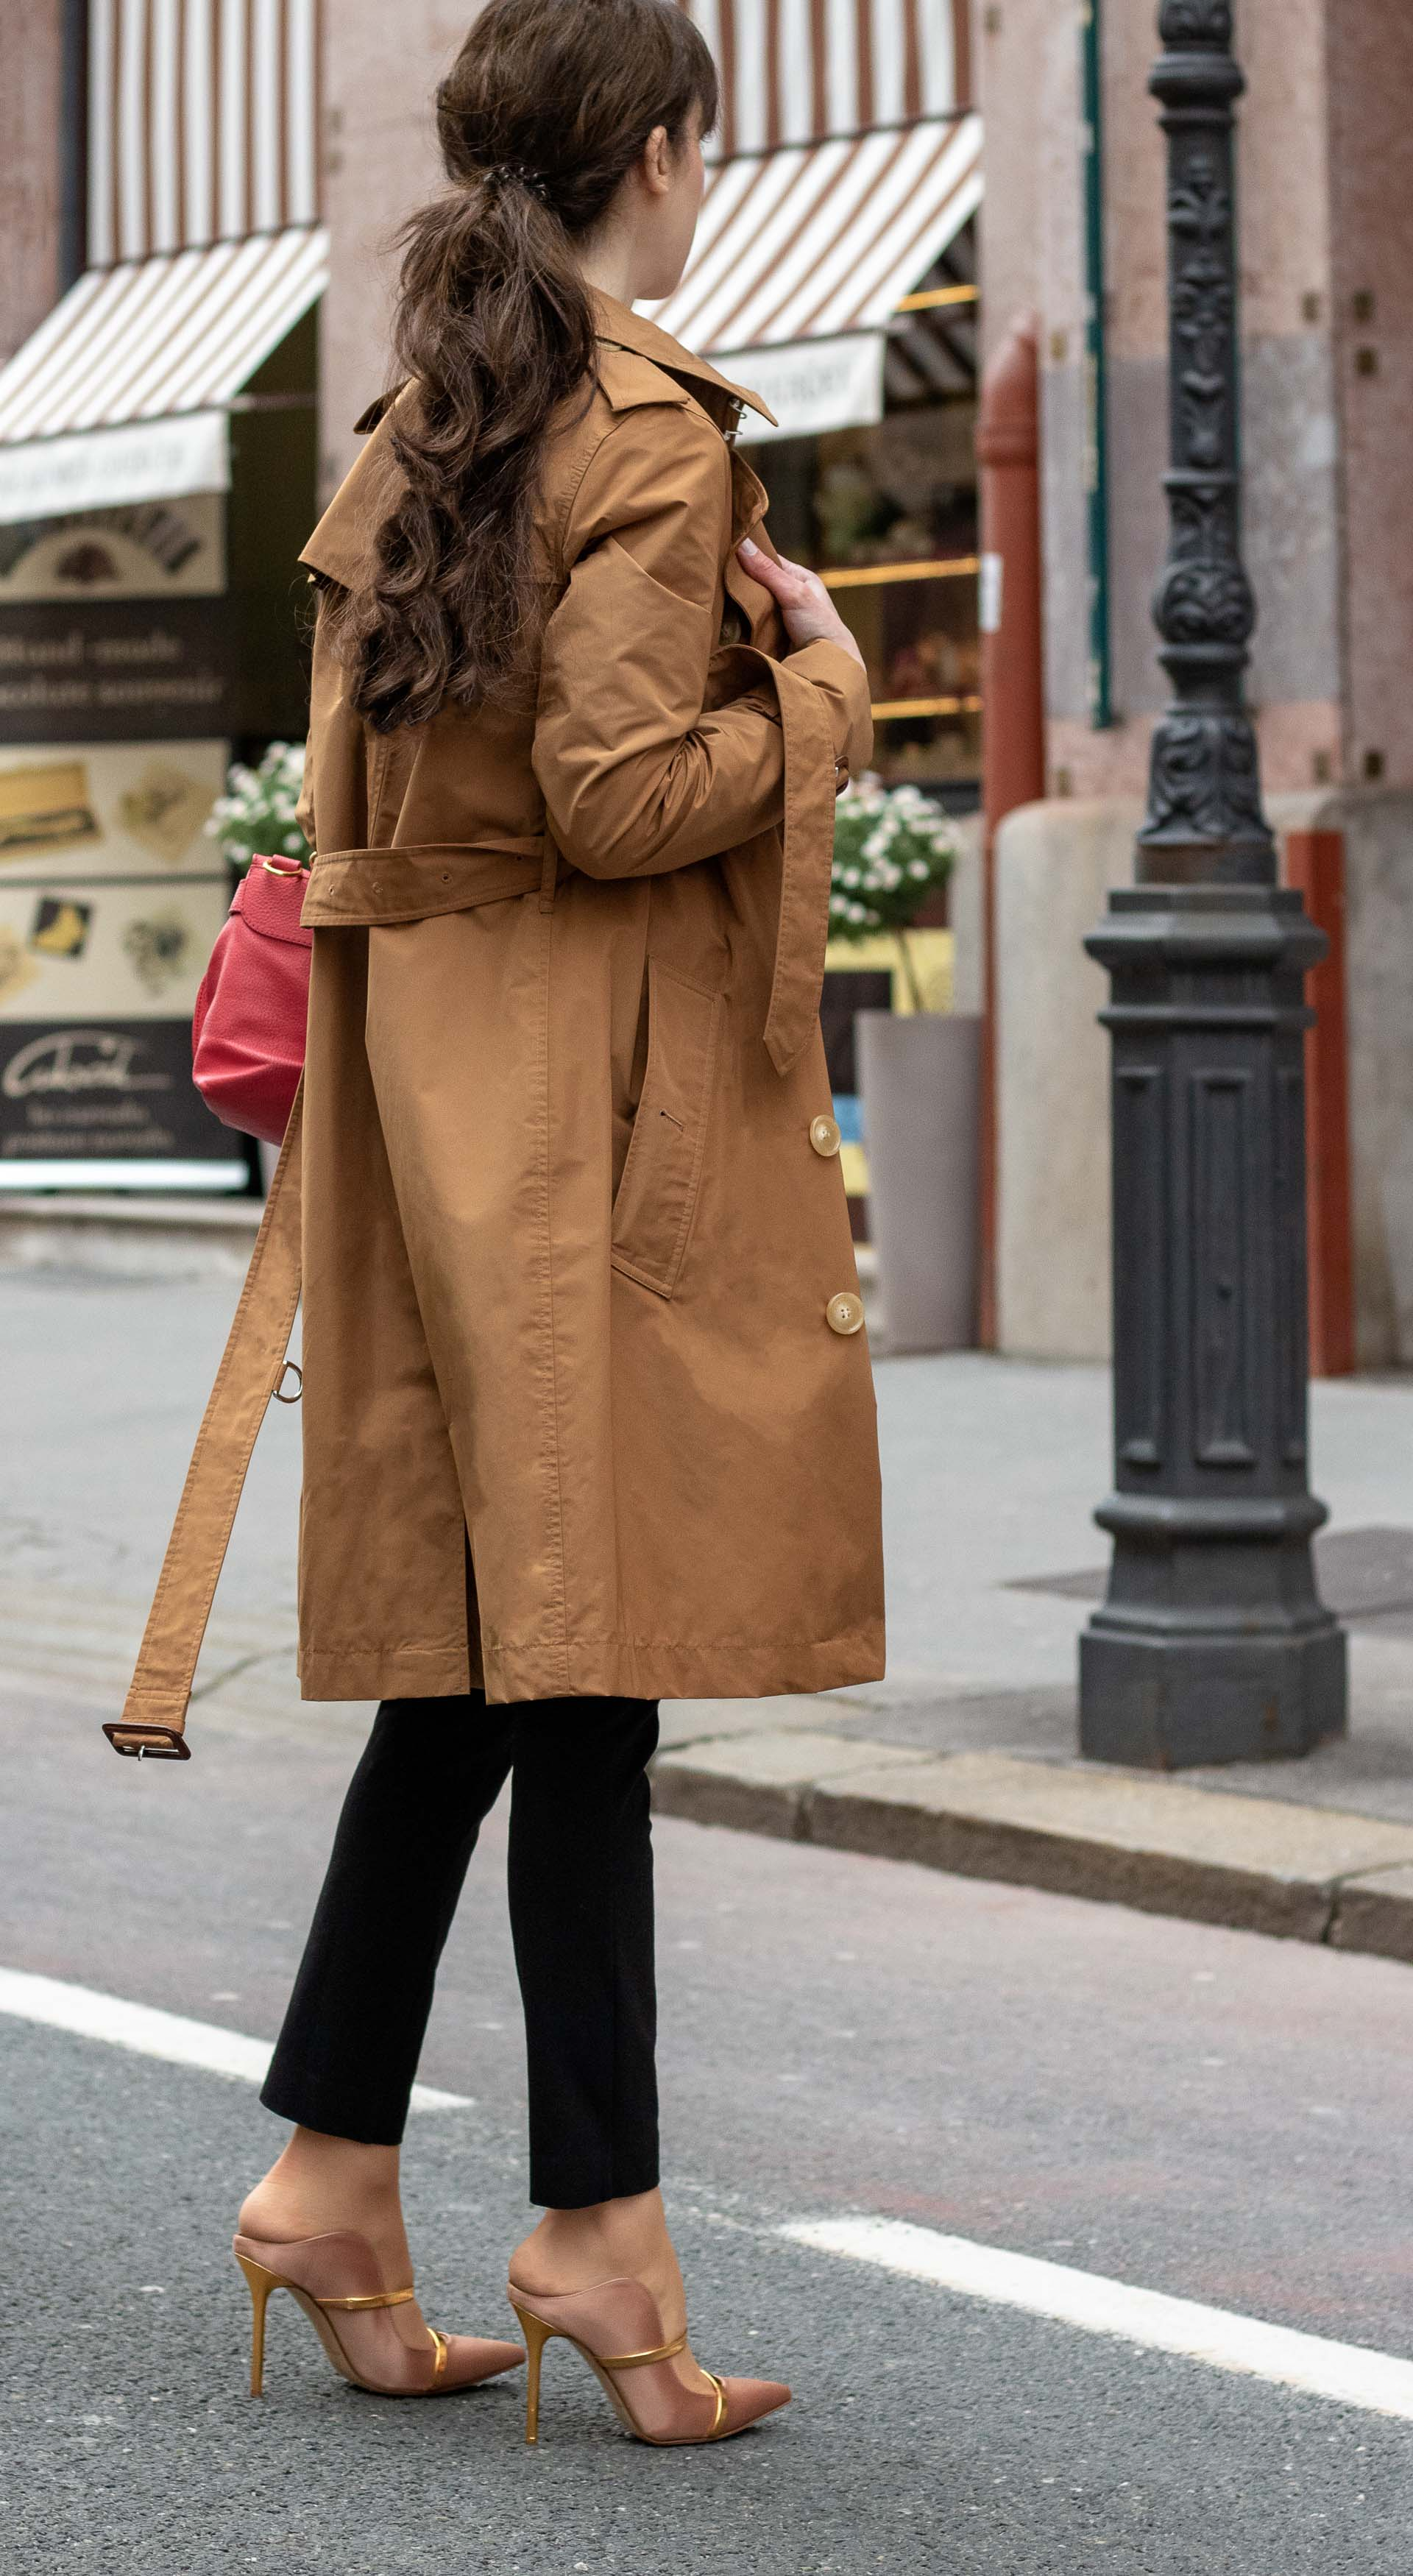 Must follow Slovenian Fashion Blogger Veronika Lipar of Brunette from Wall Street wearing camel Burberry Kensington trench coat black slacks blush Malone Souliers mules pink top handle bag low ponytail bangs going to work